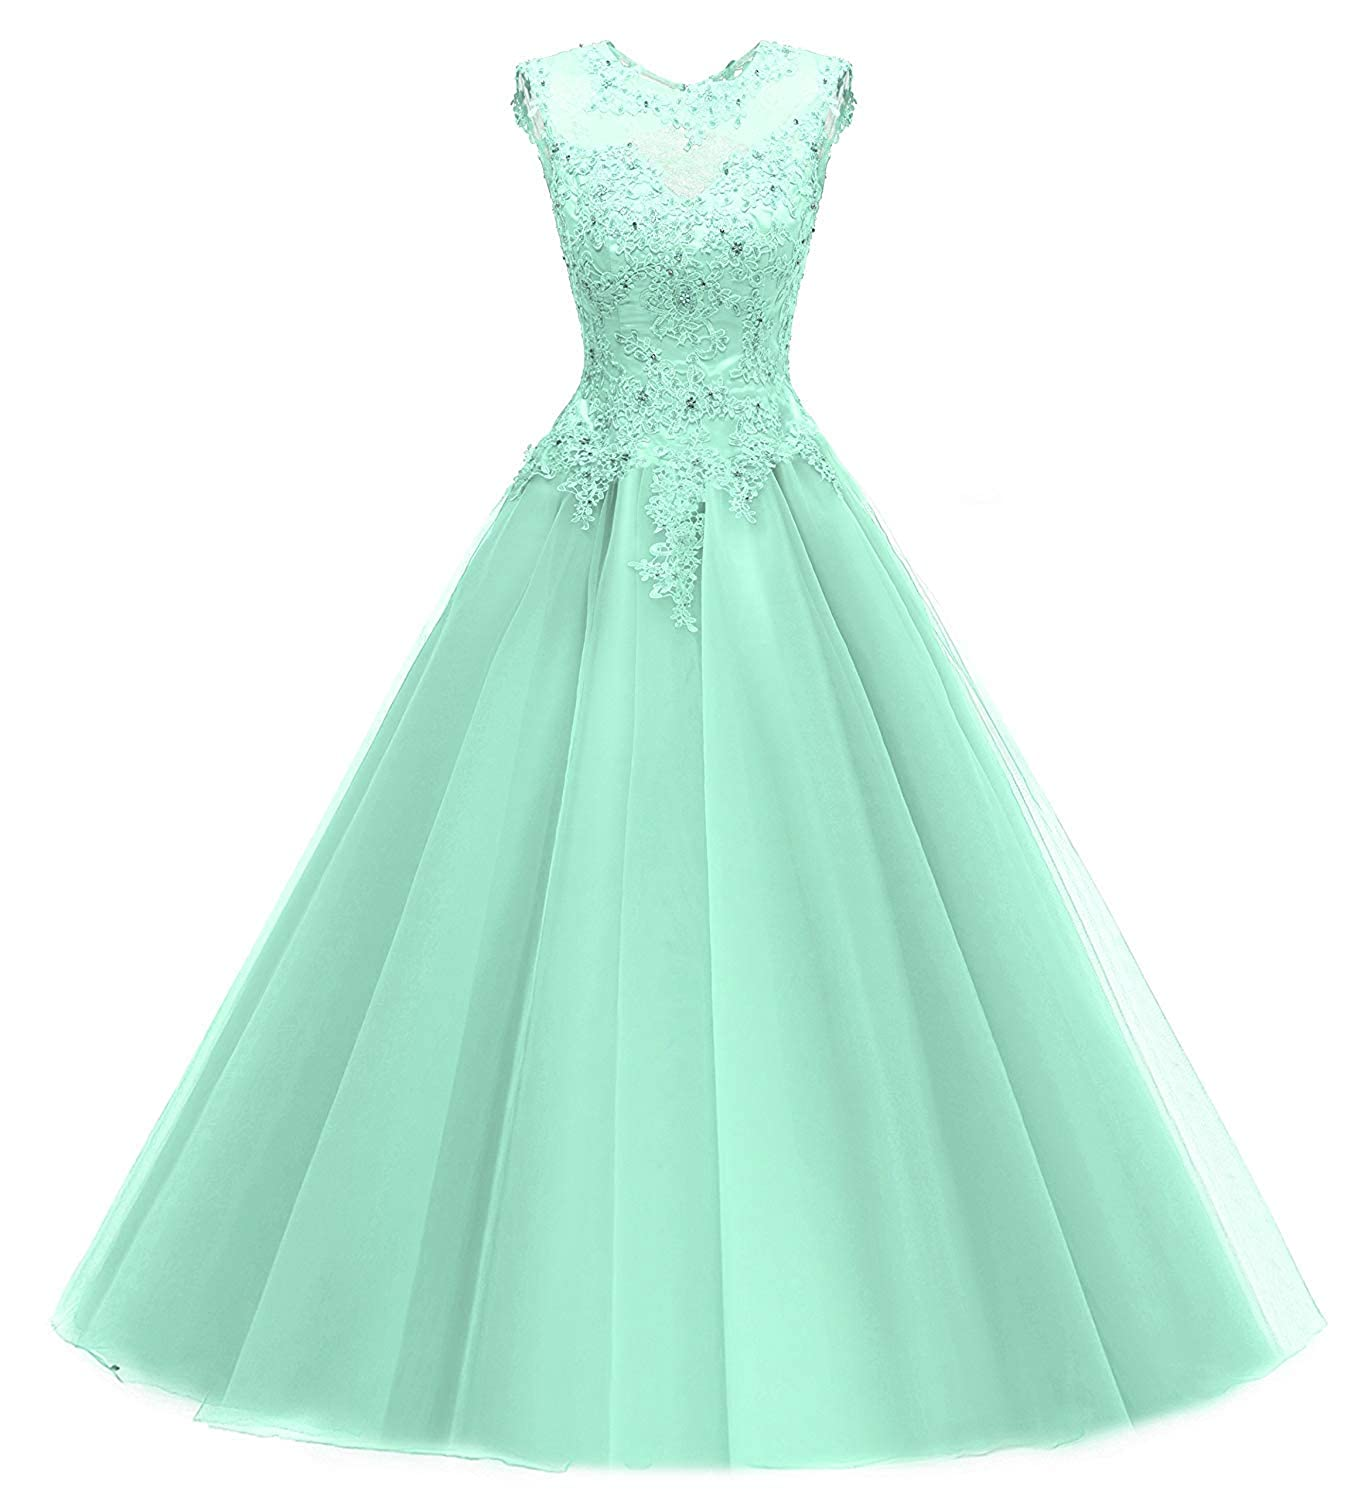 Mint PromQueen Women Quinceanera Dresses Lace Beading Evening Party Dress Sequined Appliques Prom Gown Long